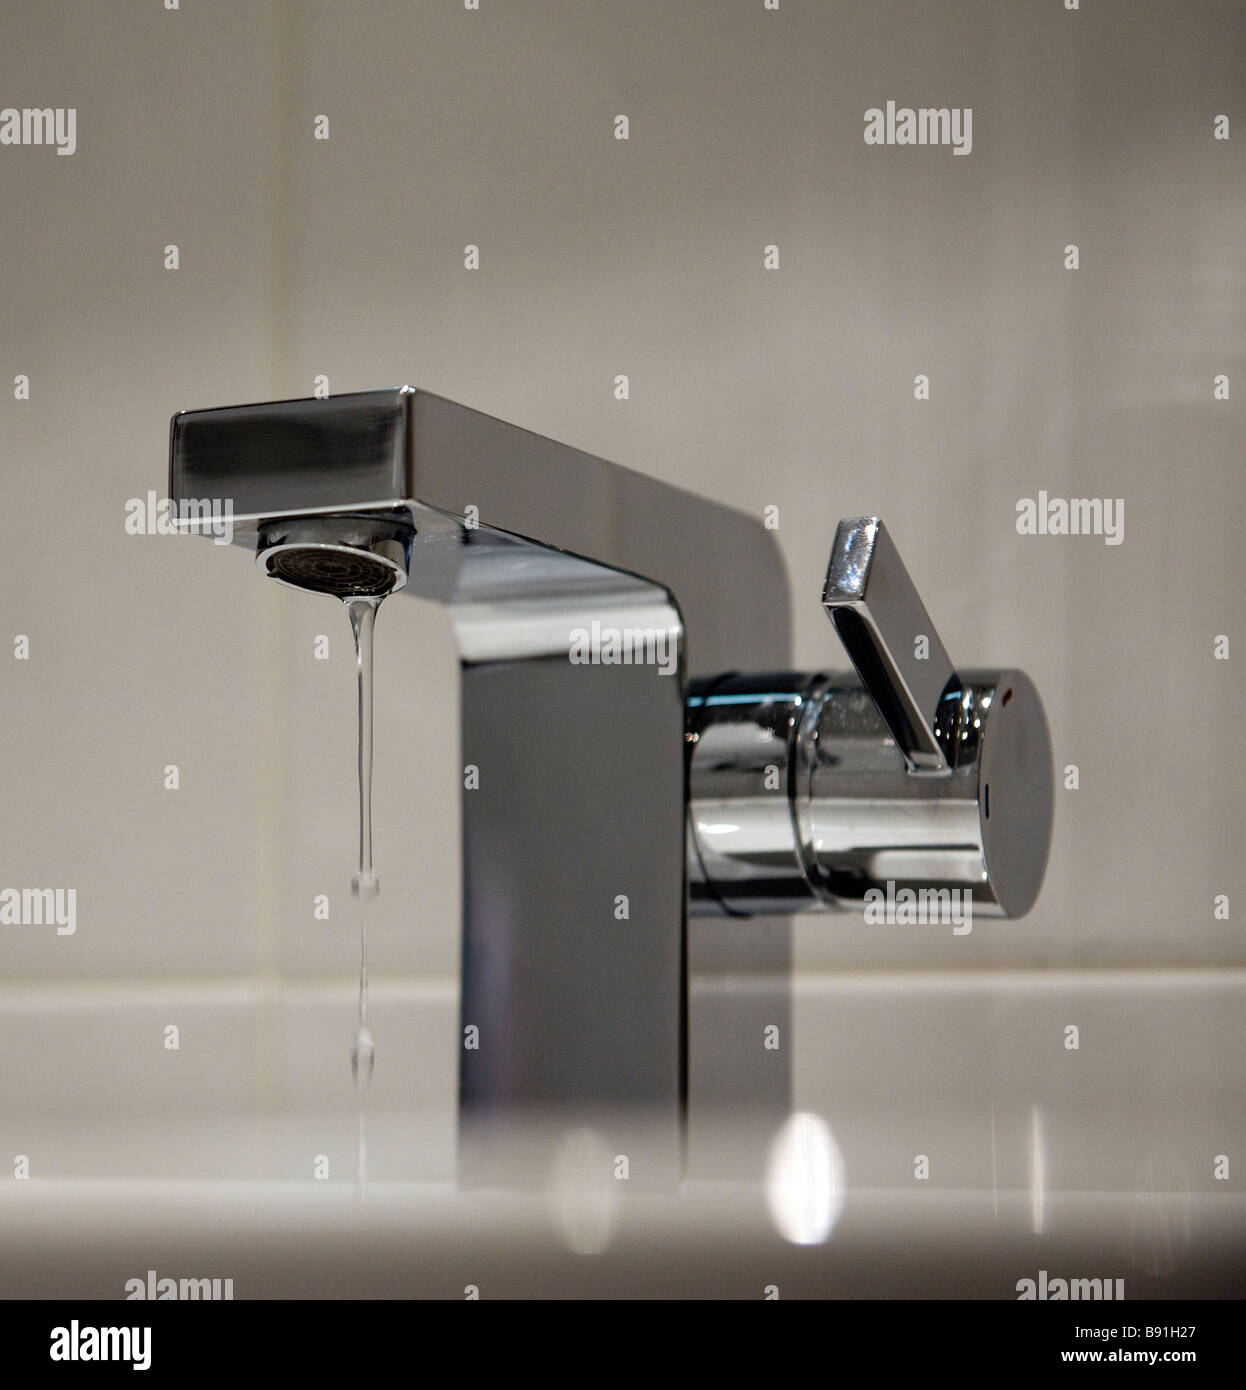 Domestic water tap or Faucet dripping - Stock Image